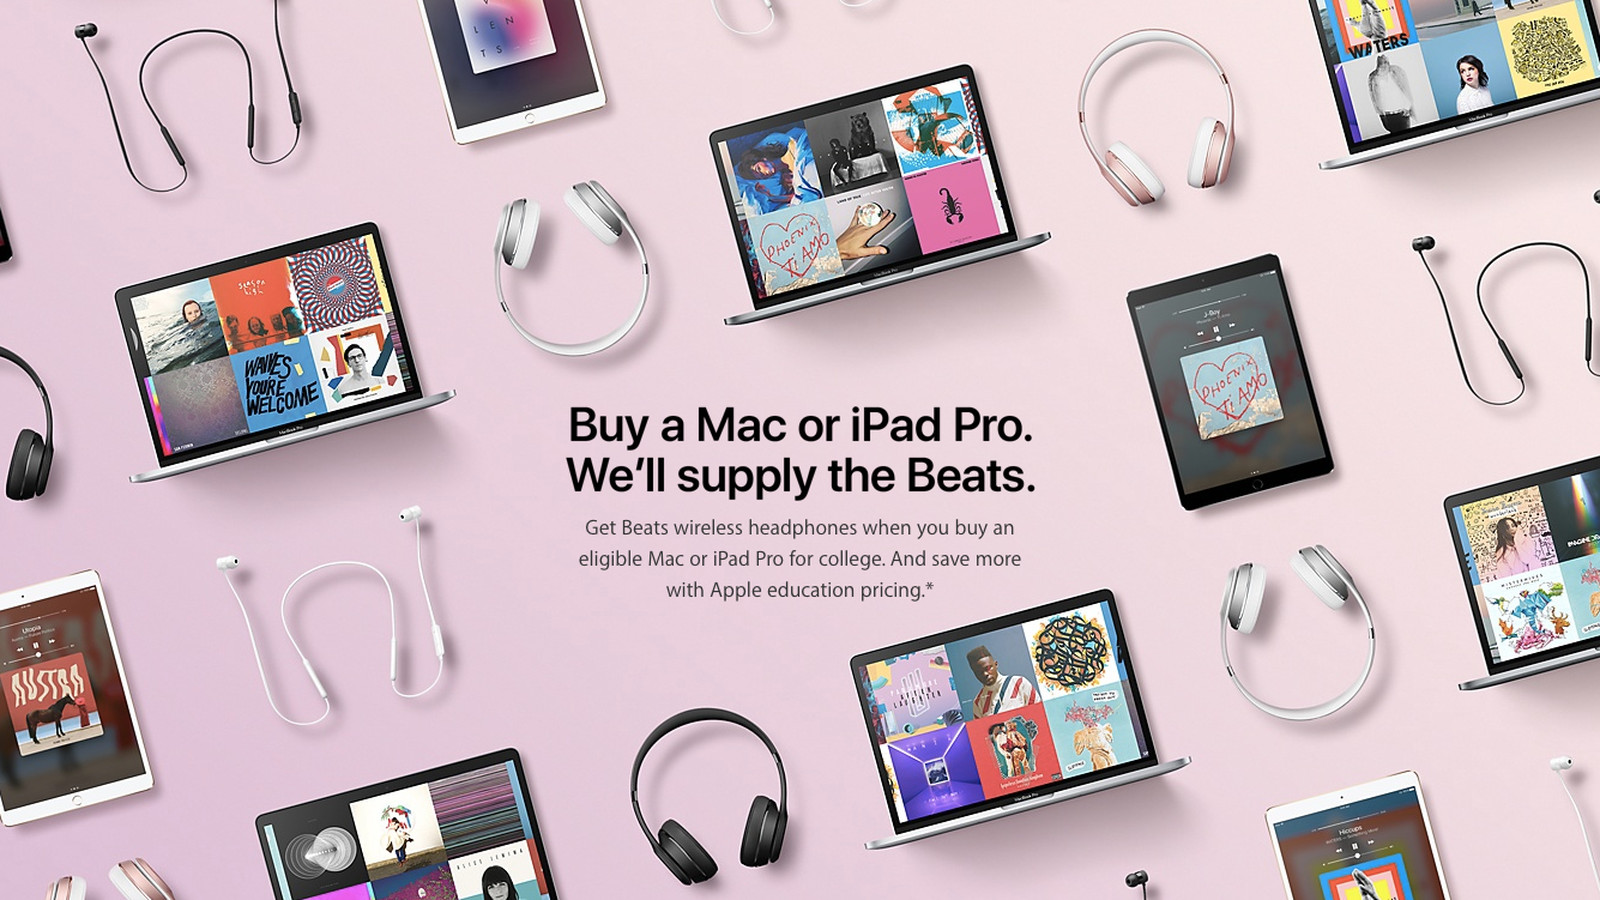 Apple is Giving Students Free Beats Headphones if They Purchase MacBooks and iPads